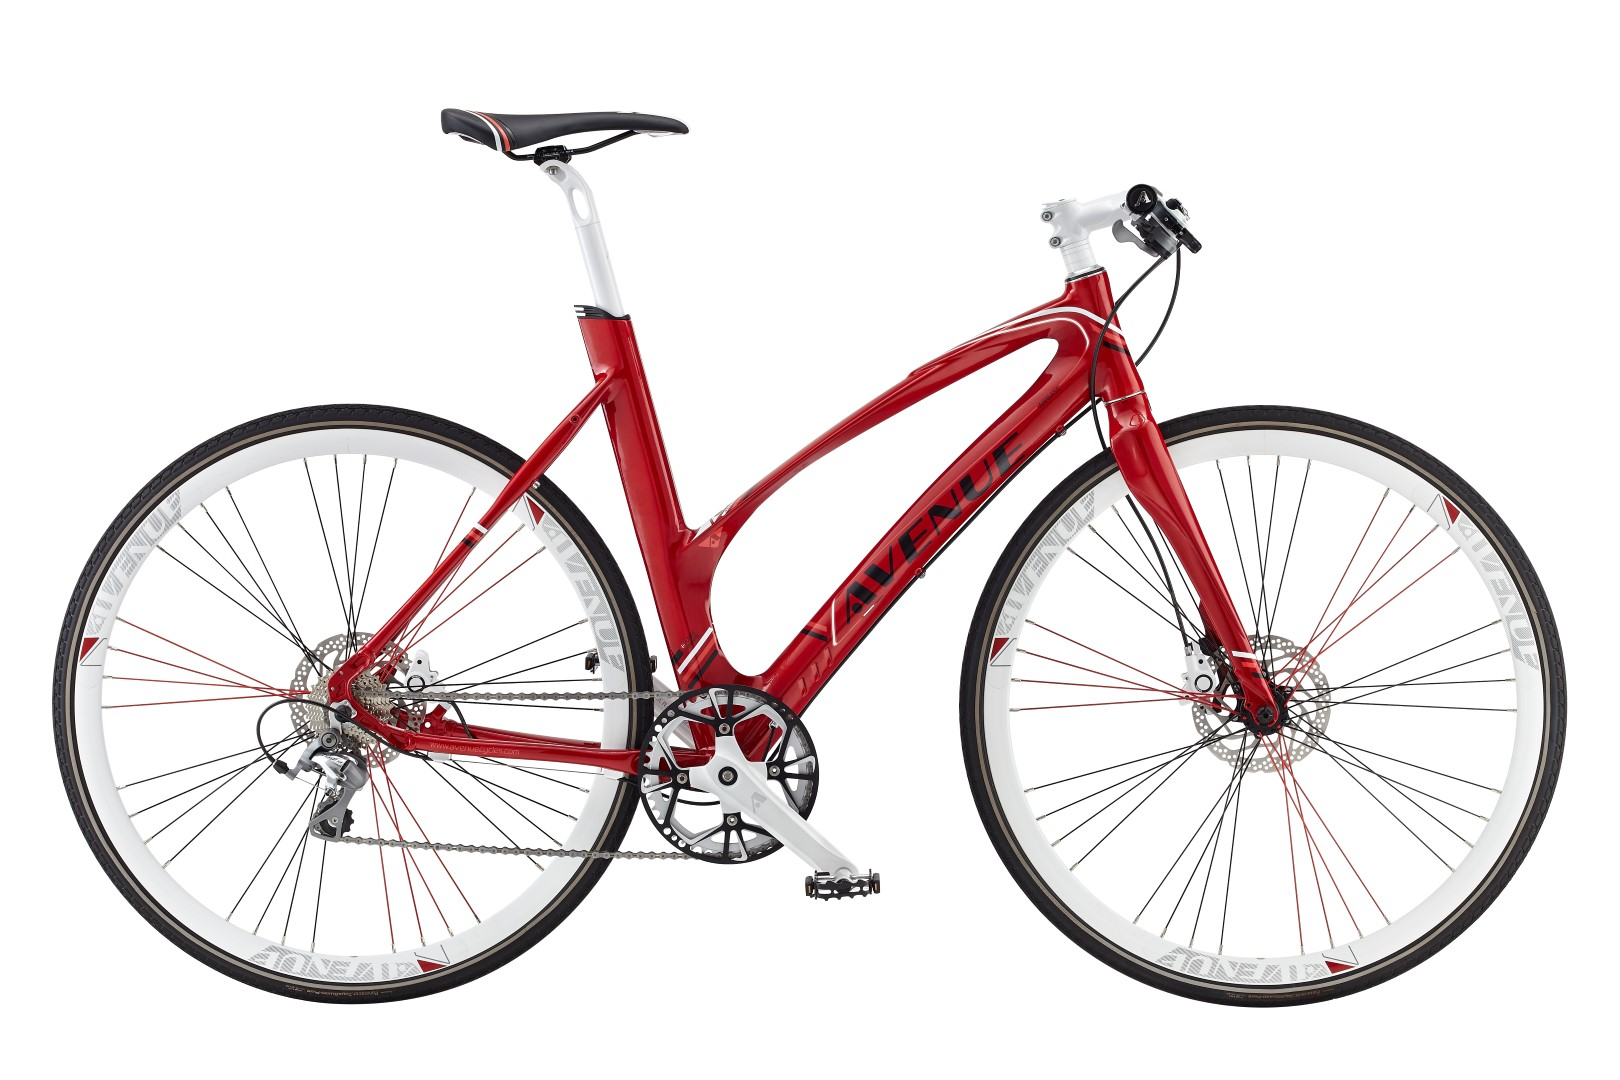 Avenue Airbase 10sp Tiagra Hydraulic Disc, Glam Red 2016